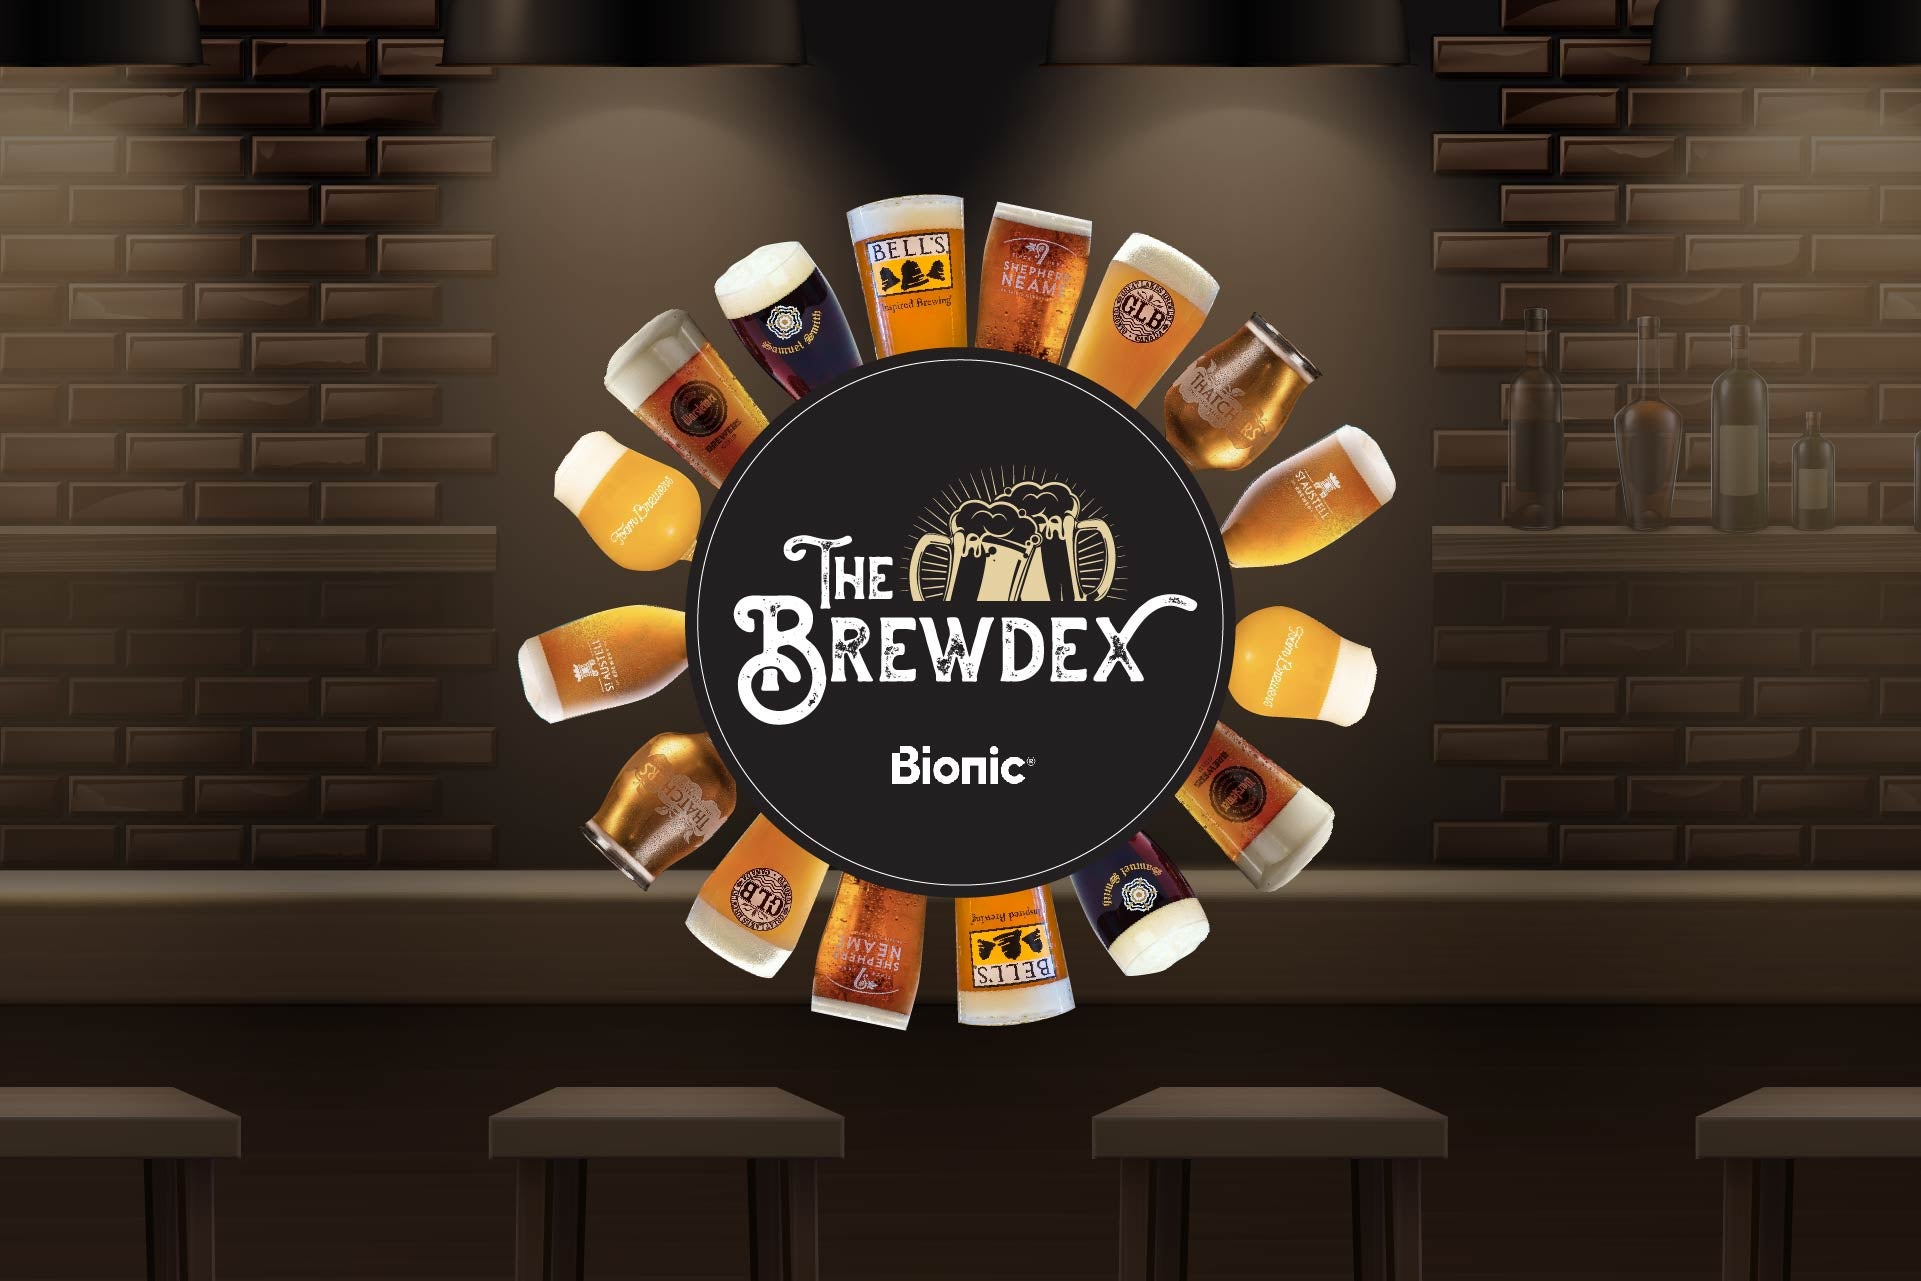 Different pints of beers set around a beer mat that says The Brewdex - Bionic